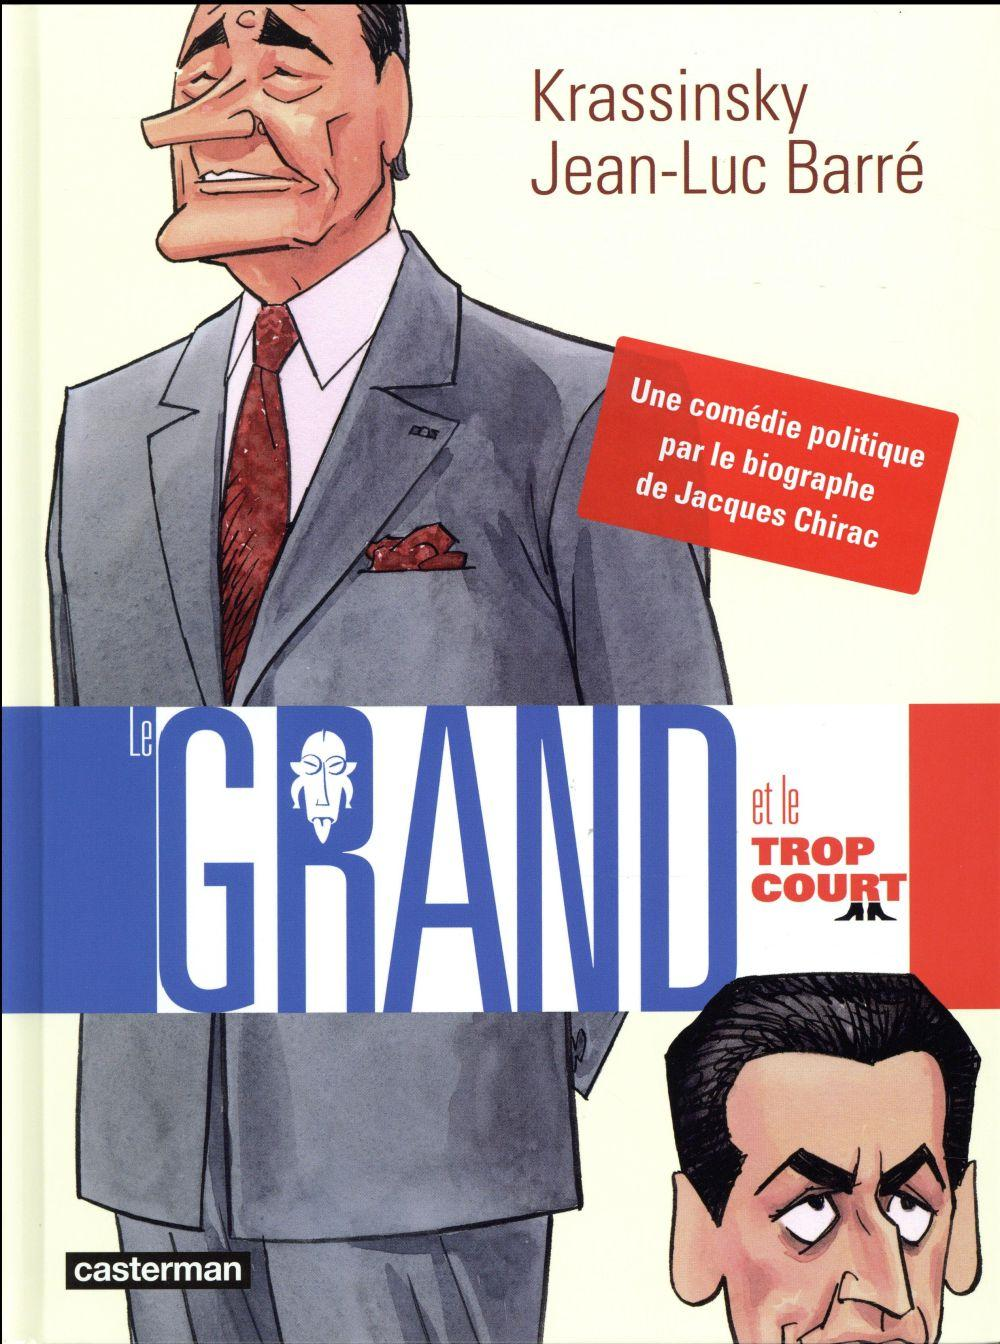 Le grand et le trop court  - Jean-Luc Barre  - Jean-Paul Krassinsky